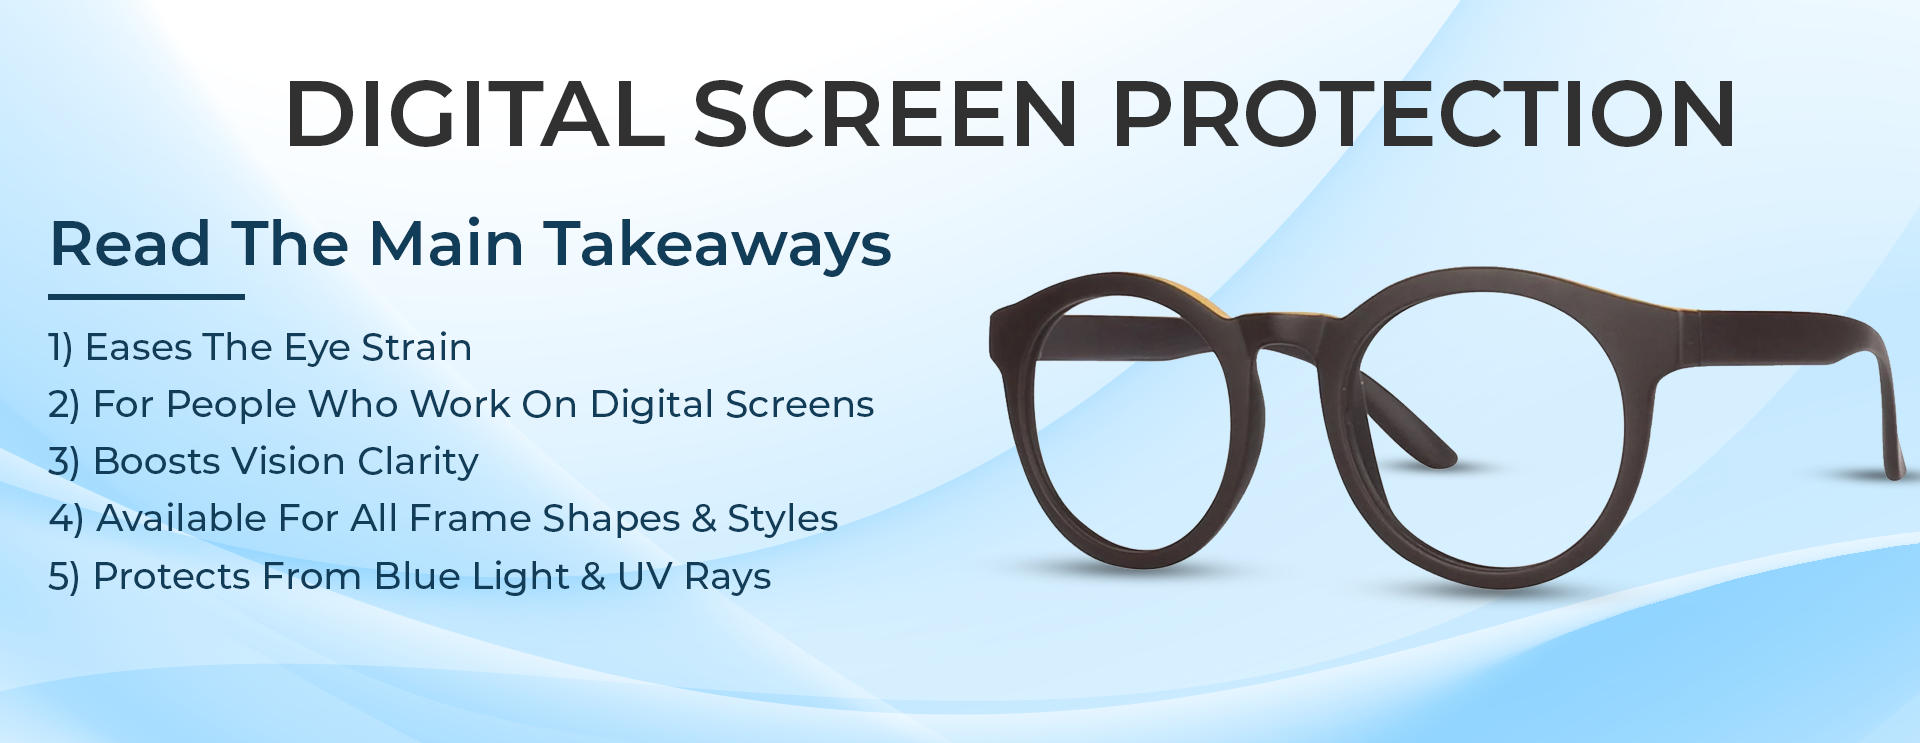 Digital Screen Protection - The Main Takeaways